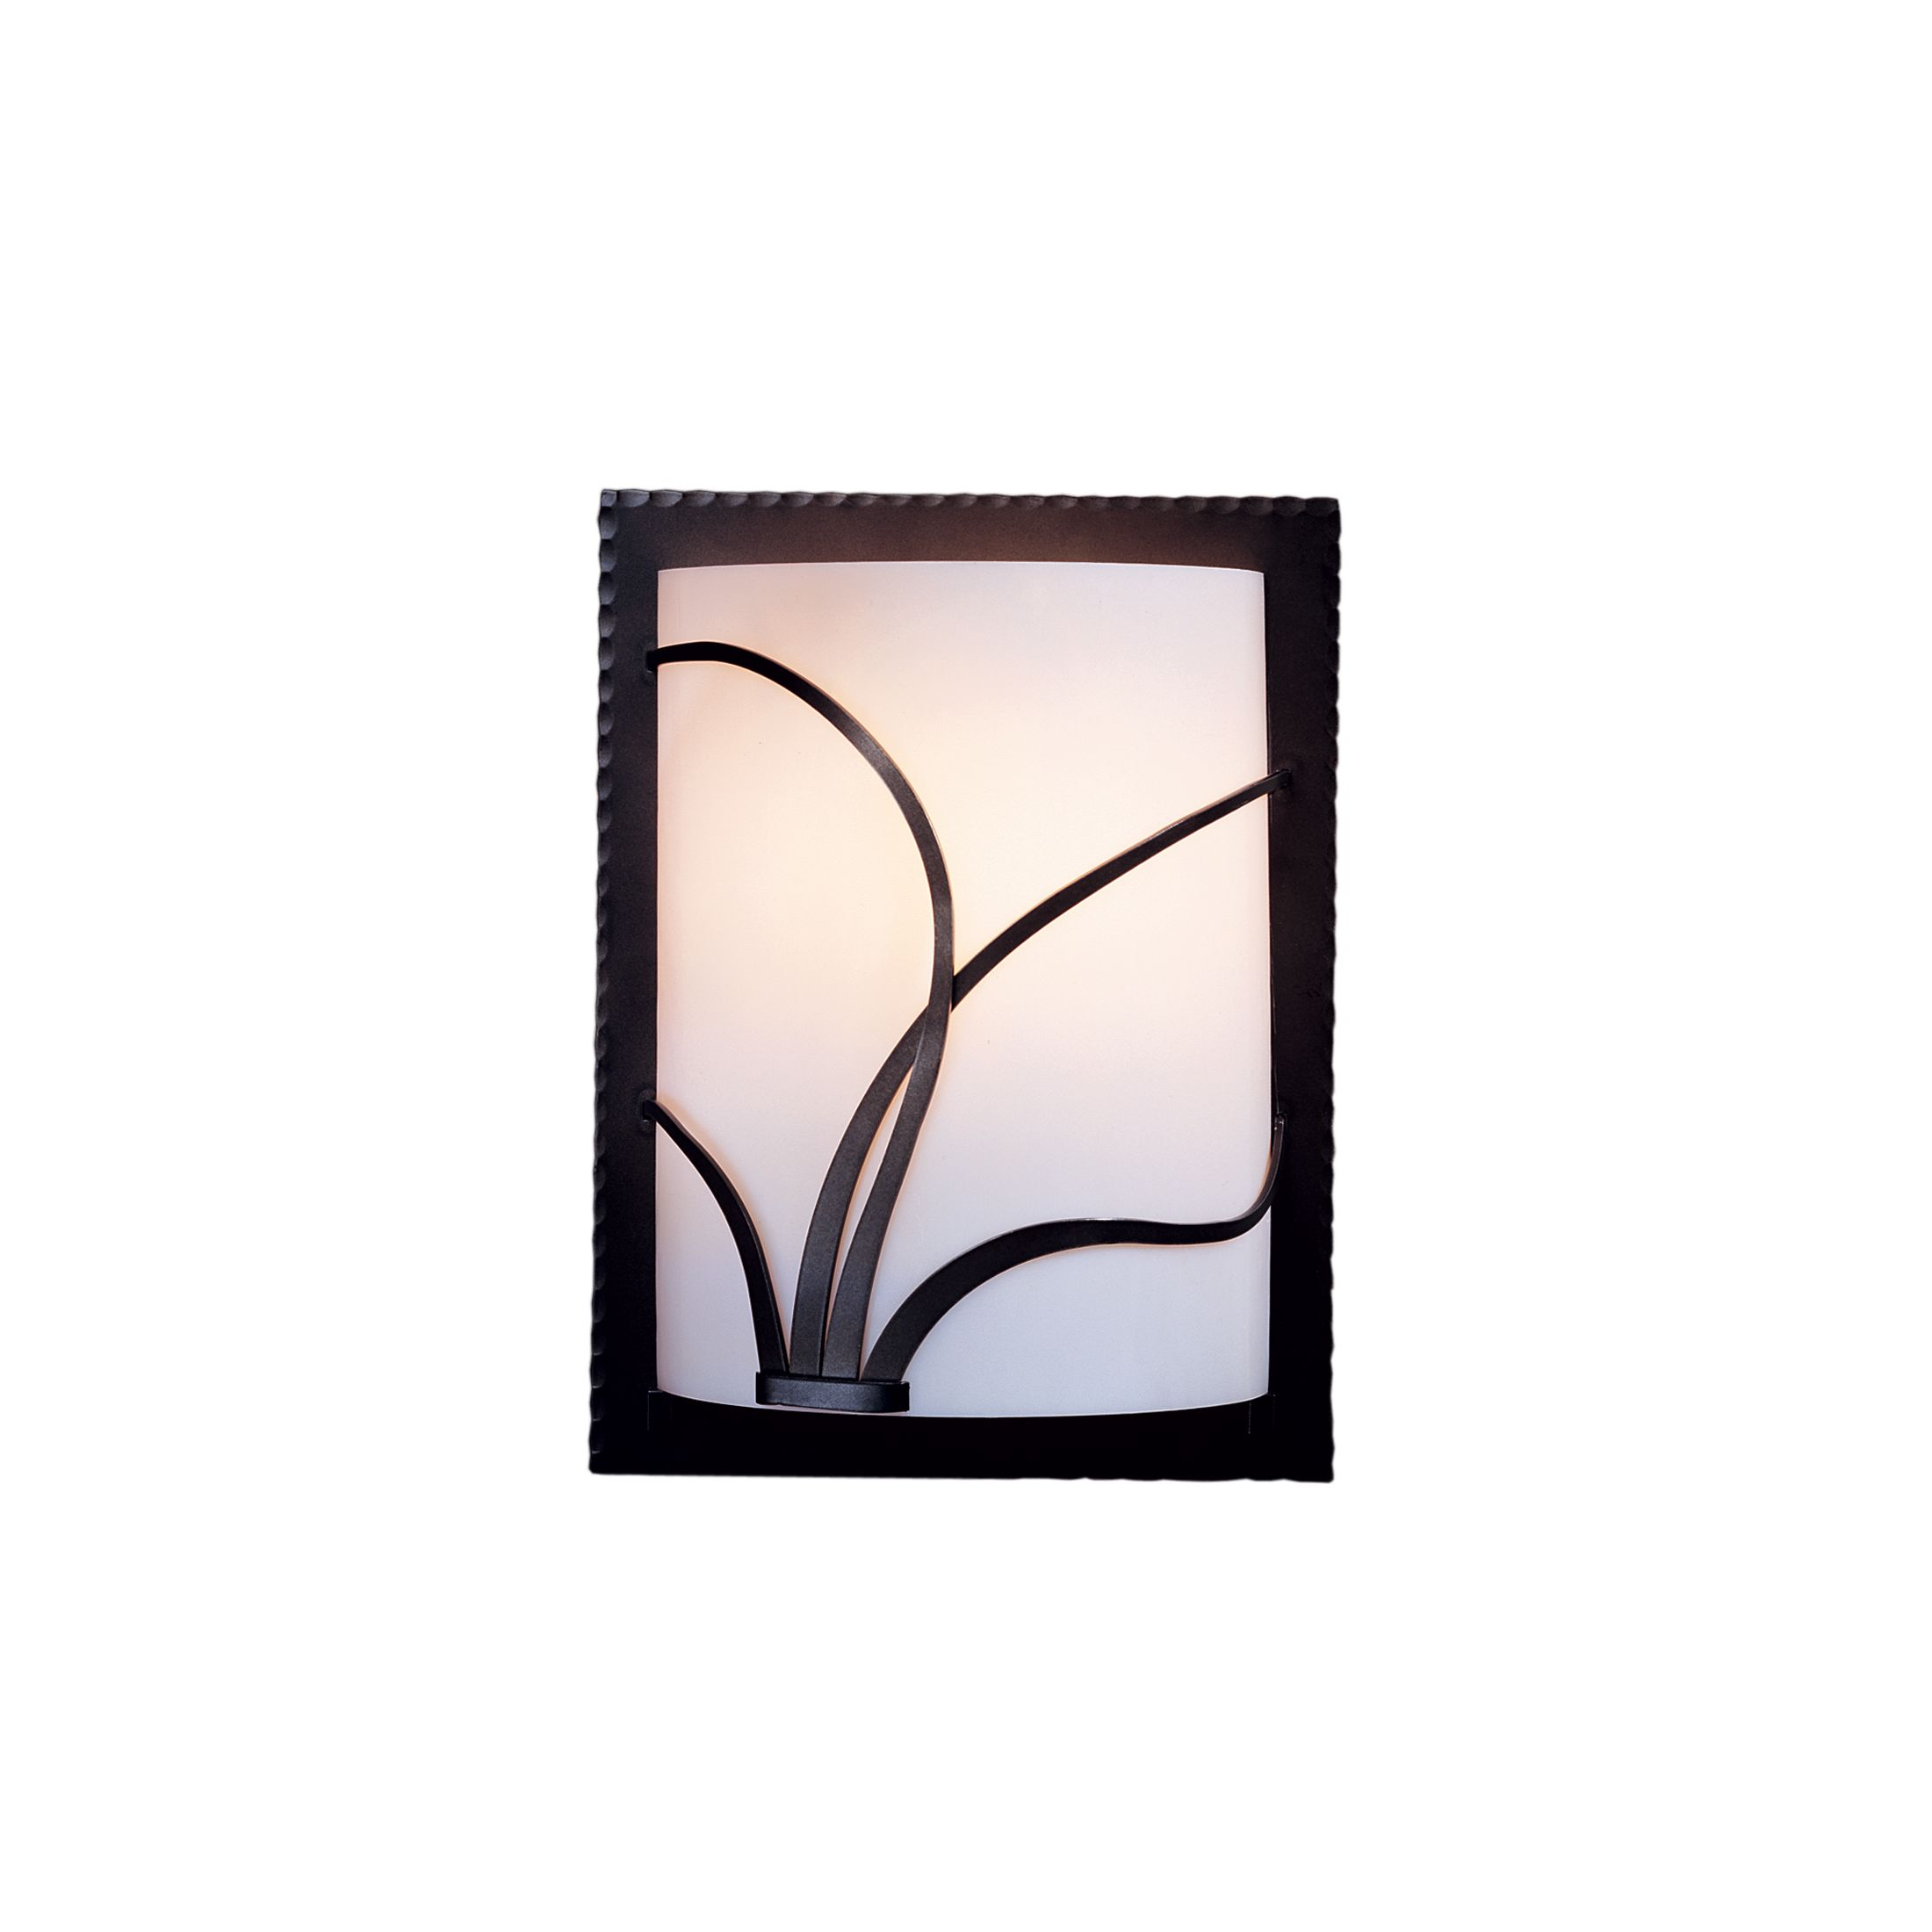 Thumbnail for Forged Reeds Sconce